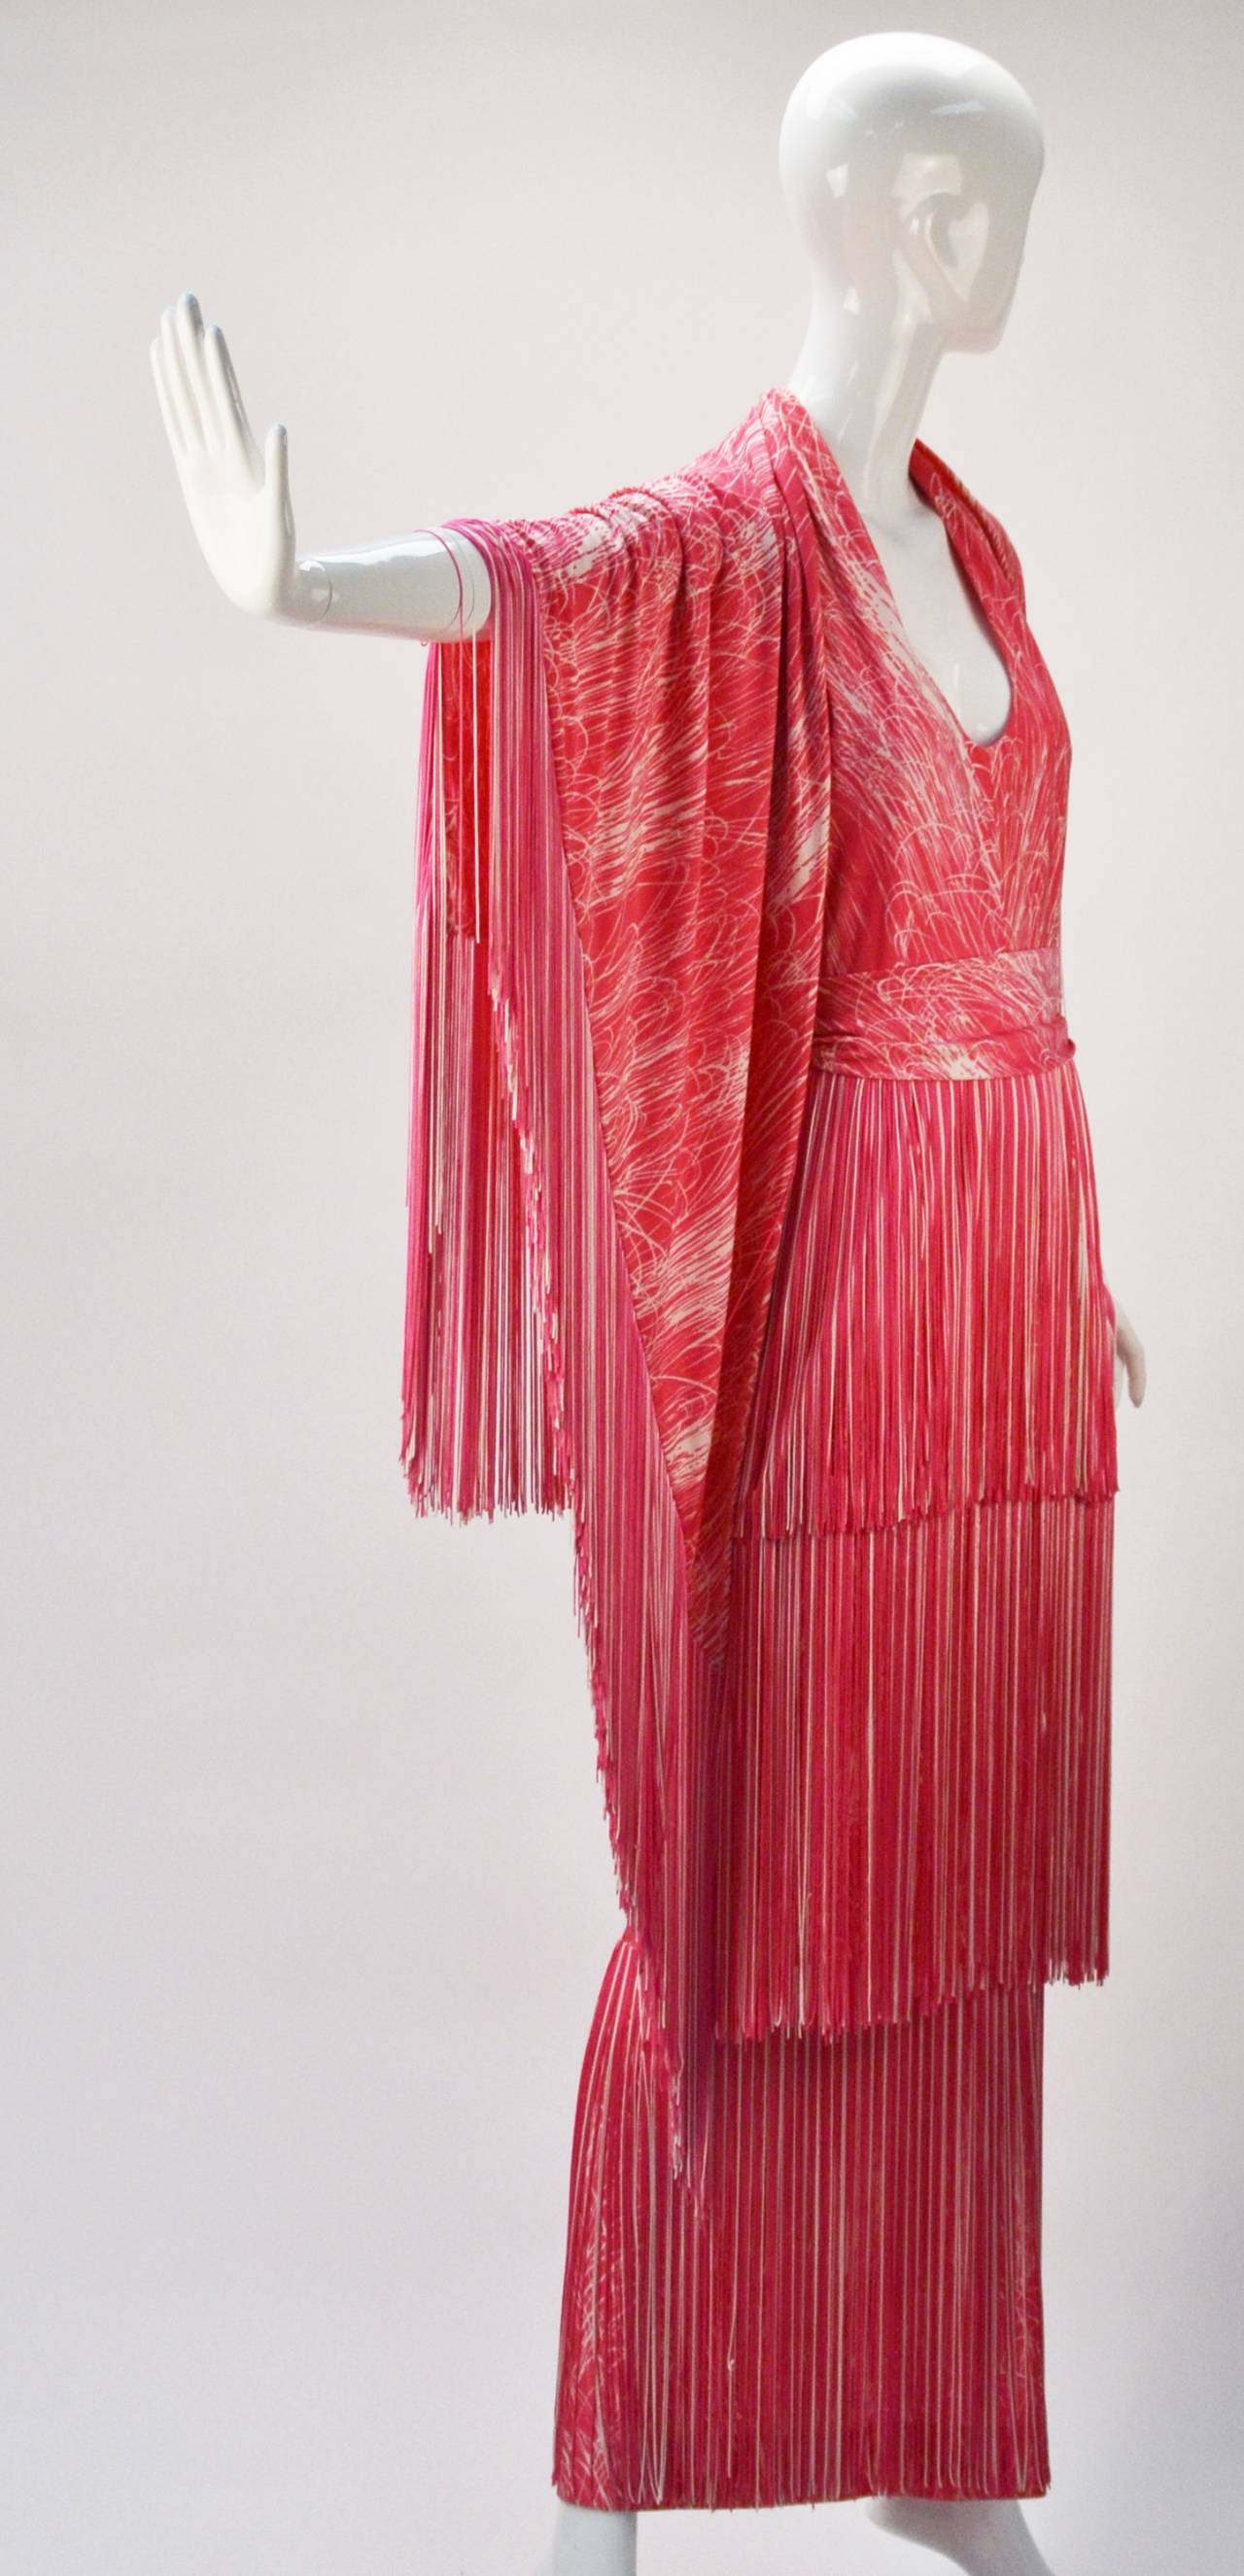 Sexy, stunning, and fun 1970's Lilli Diamond pink and white halter dress and shawl with fringe trim.  The halter neckline fastens at back neck with two hook-and-eyes, while also having a zipper fastener down the center back. There is a detachable